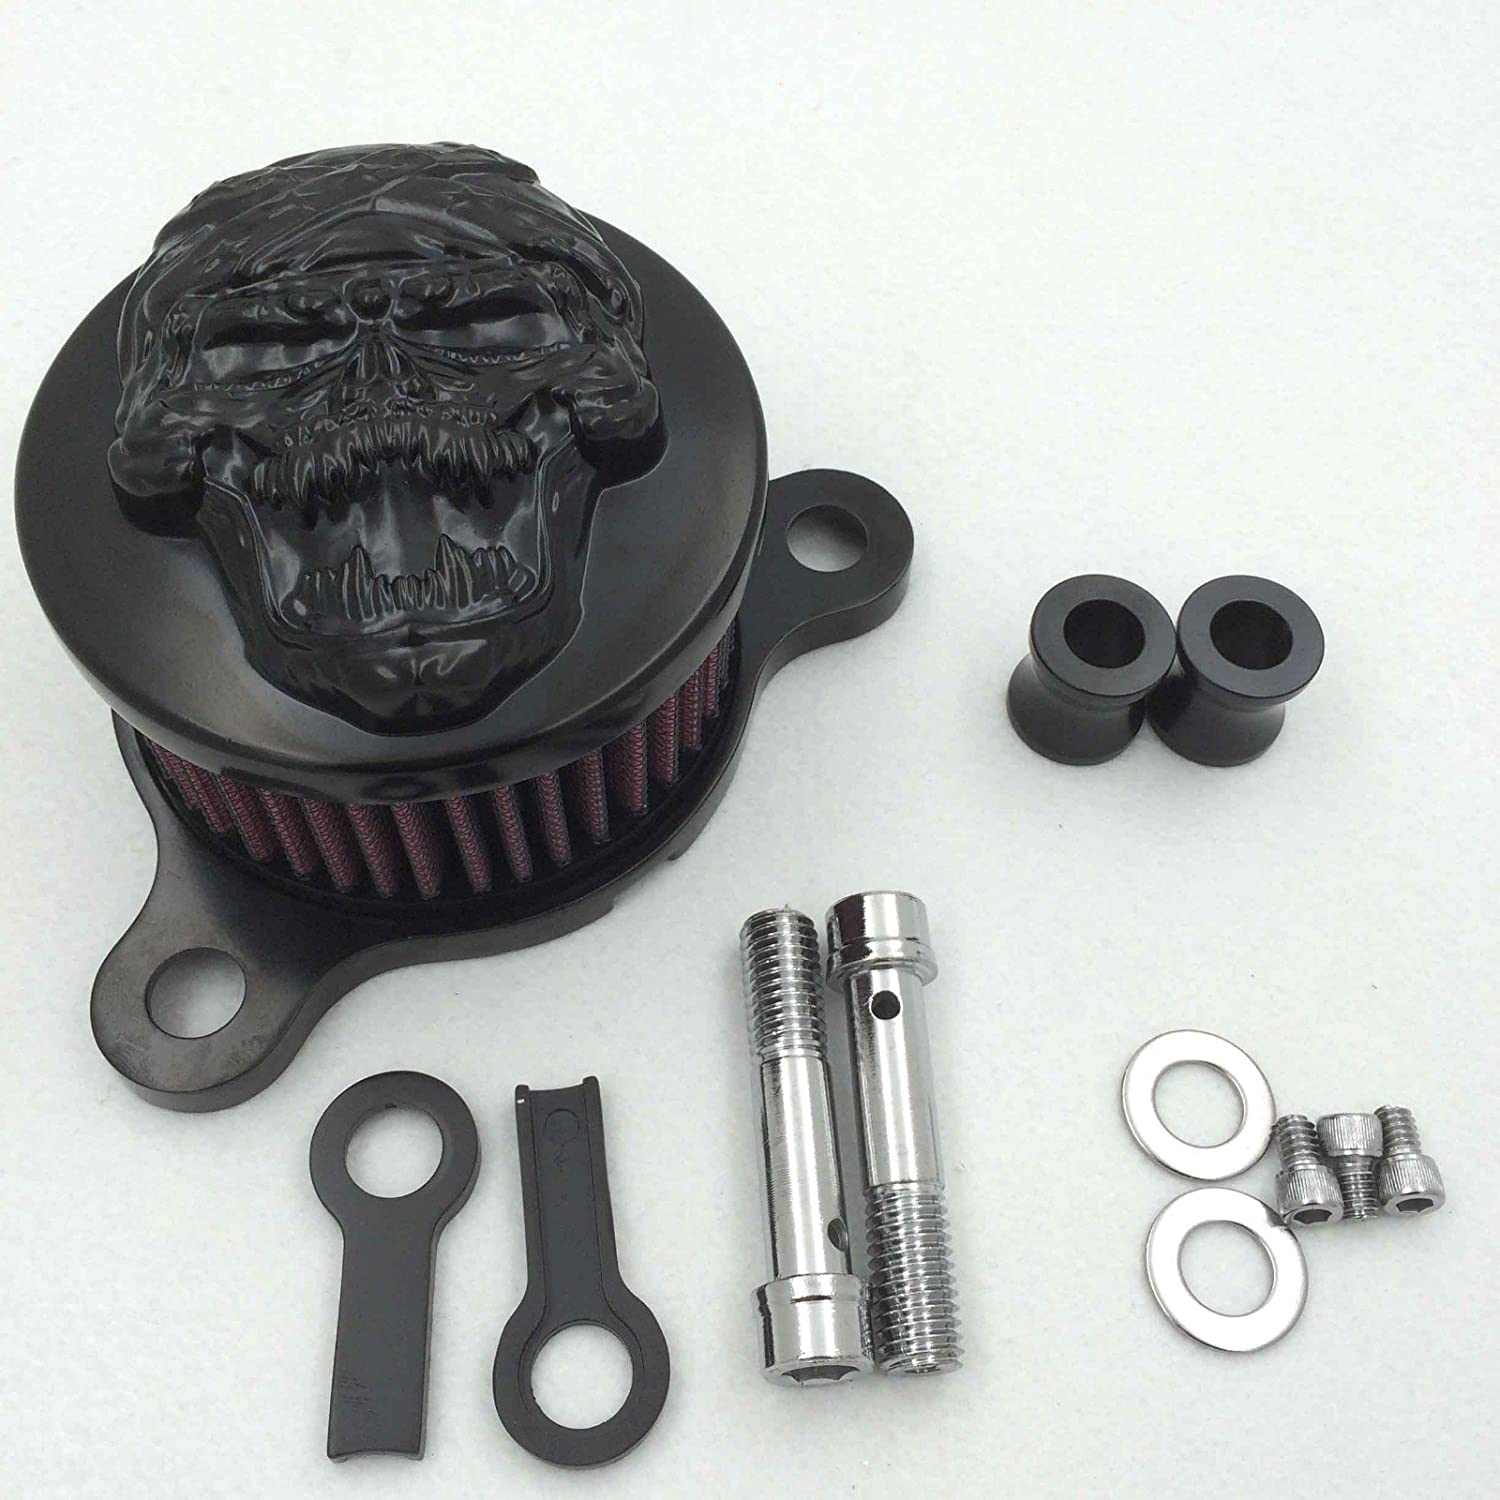 Black Skull with Cross Bone Air Cleaner Intake Filter System Kit Compatible with Harley Davidson Sportster XL883 XL1200 1988 to 2015 HTTMT MT225-010B